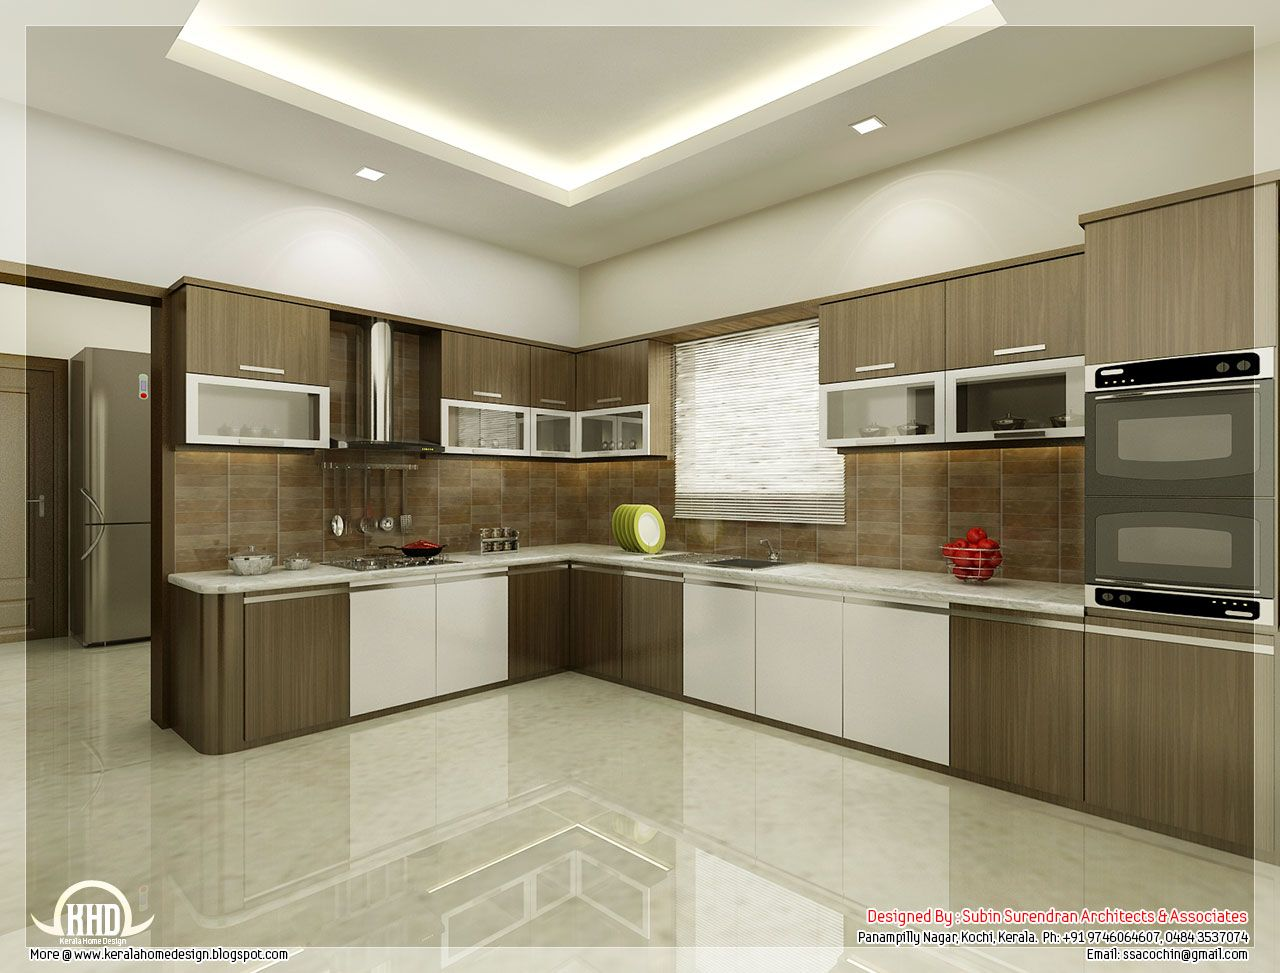 kitchen dining interiors kerala home design floor plans home luxury modern home interior design haynes house - Home Interior Designs